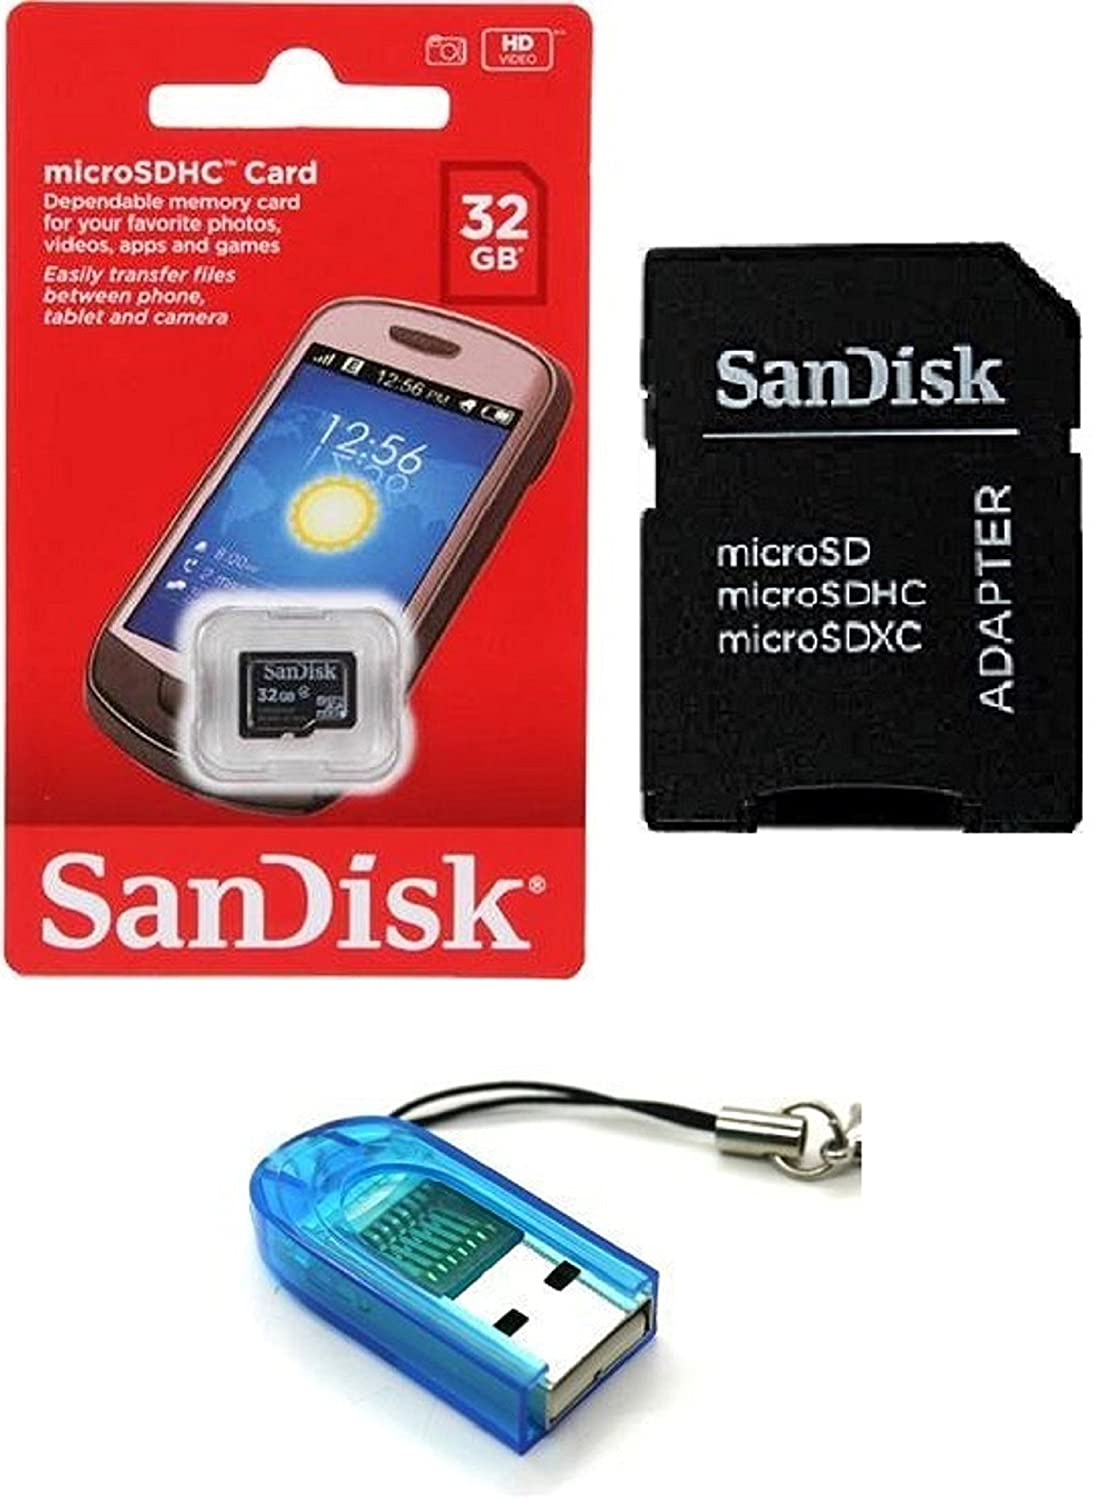 8fb0ad32a65 Amazon.com: Sandisk 32GB Class 4 MicroSDHC MicroSD C4 TF Flash Memory Card  with SD Adapter and USB SD Card Reader/Writer #R13 (Bulk Packaged):  Computers & ...